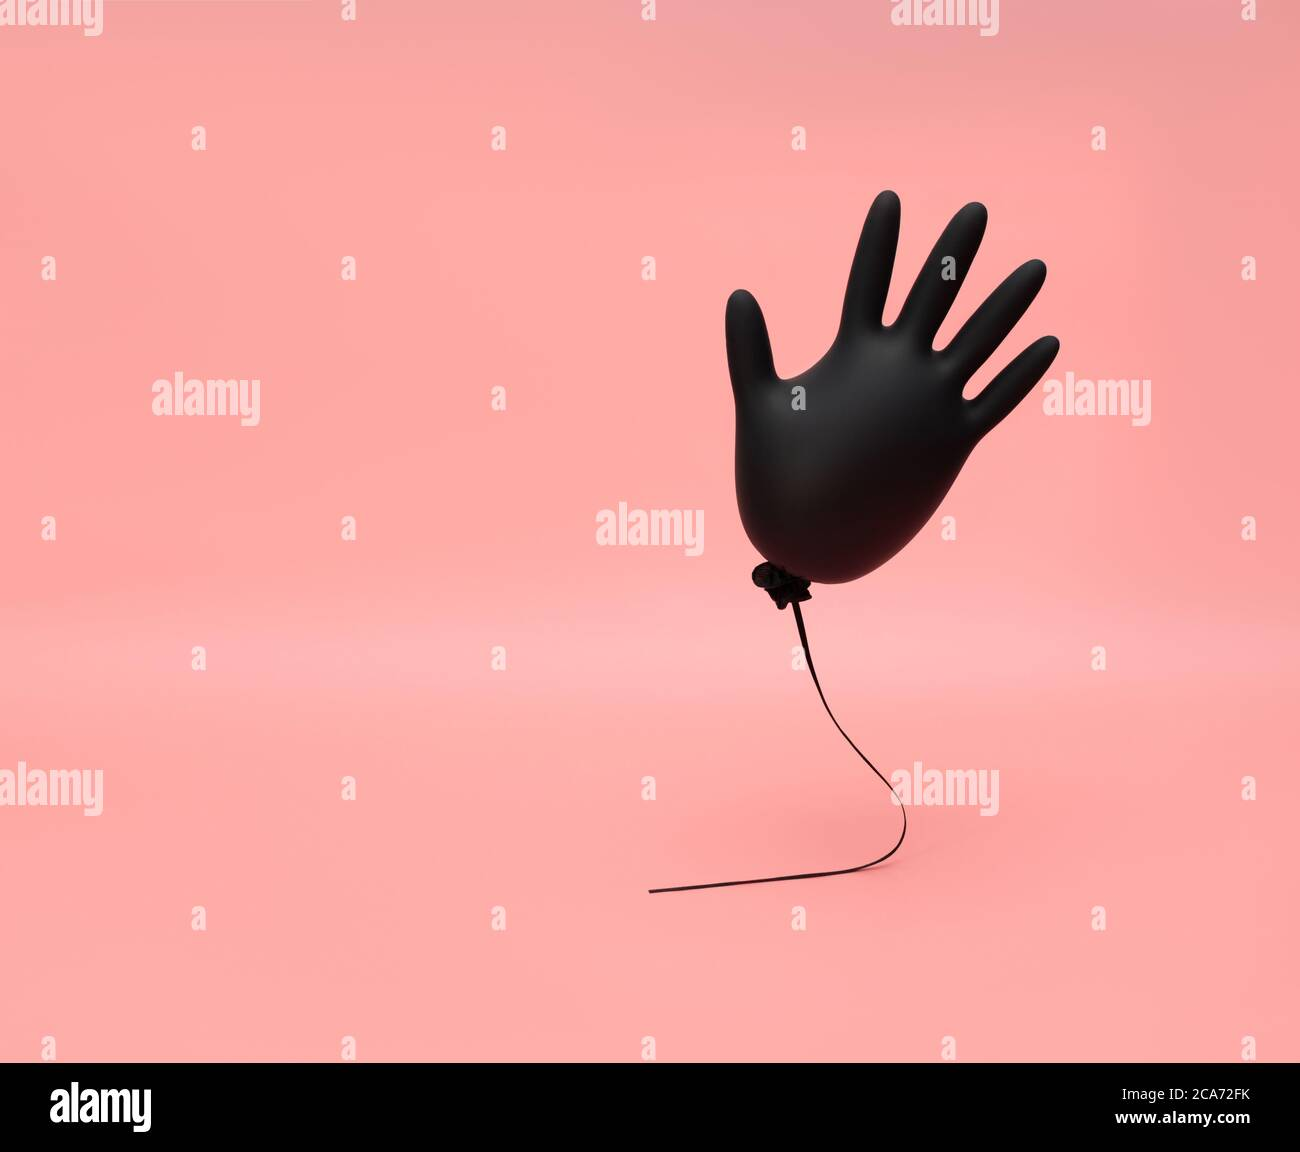 Black inflated flying rubber glove on a pink background. Prevention and protection against coronavirus, covid-19. Minimal medicine concept. Copy space Stock Photo